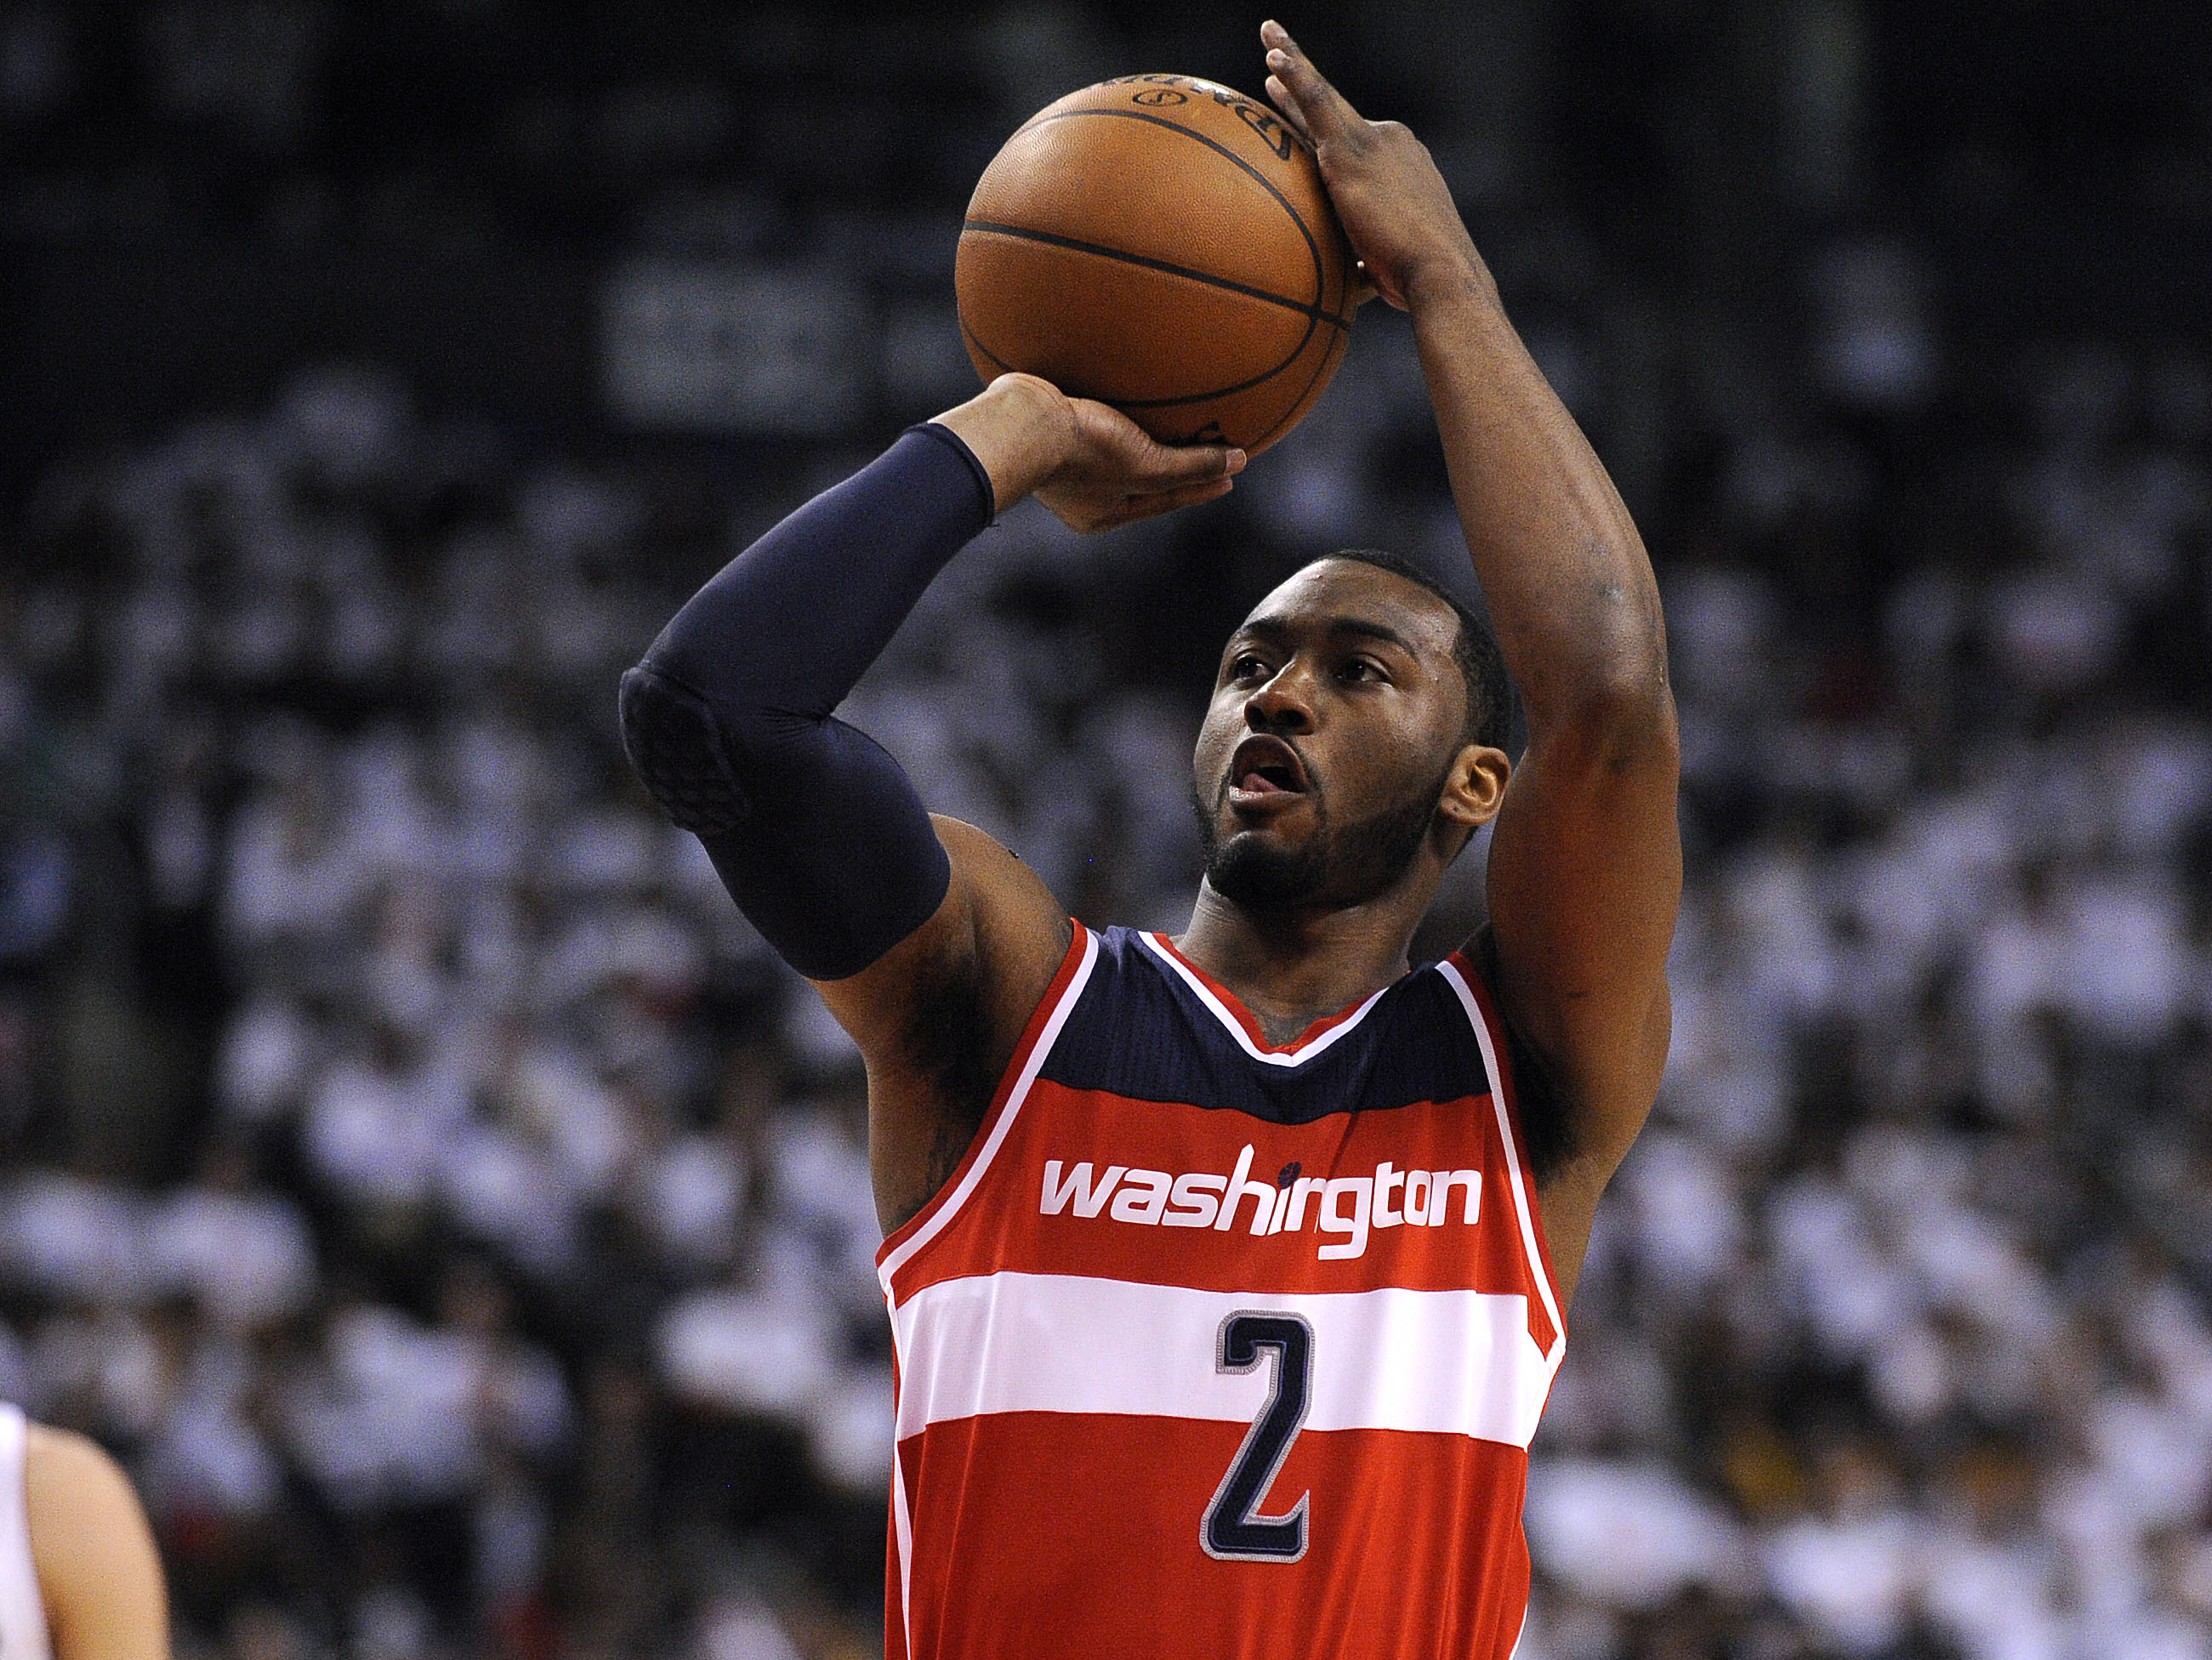 How could John Wall play with fractures in his hand and wrist? A ...